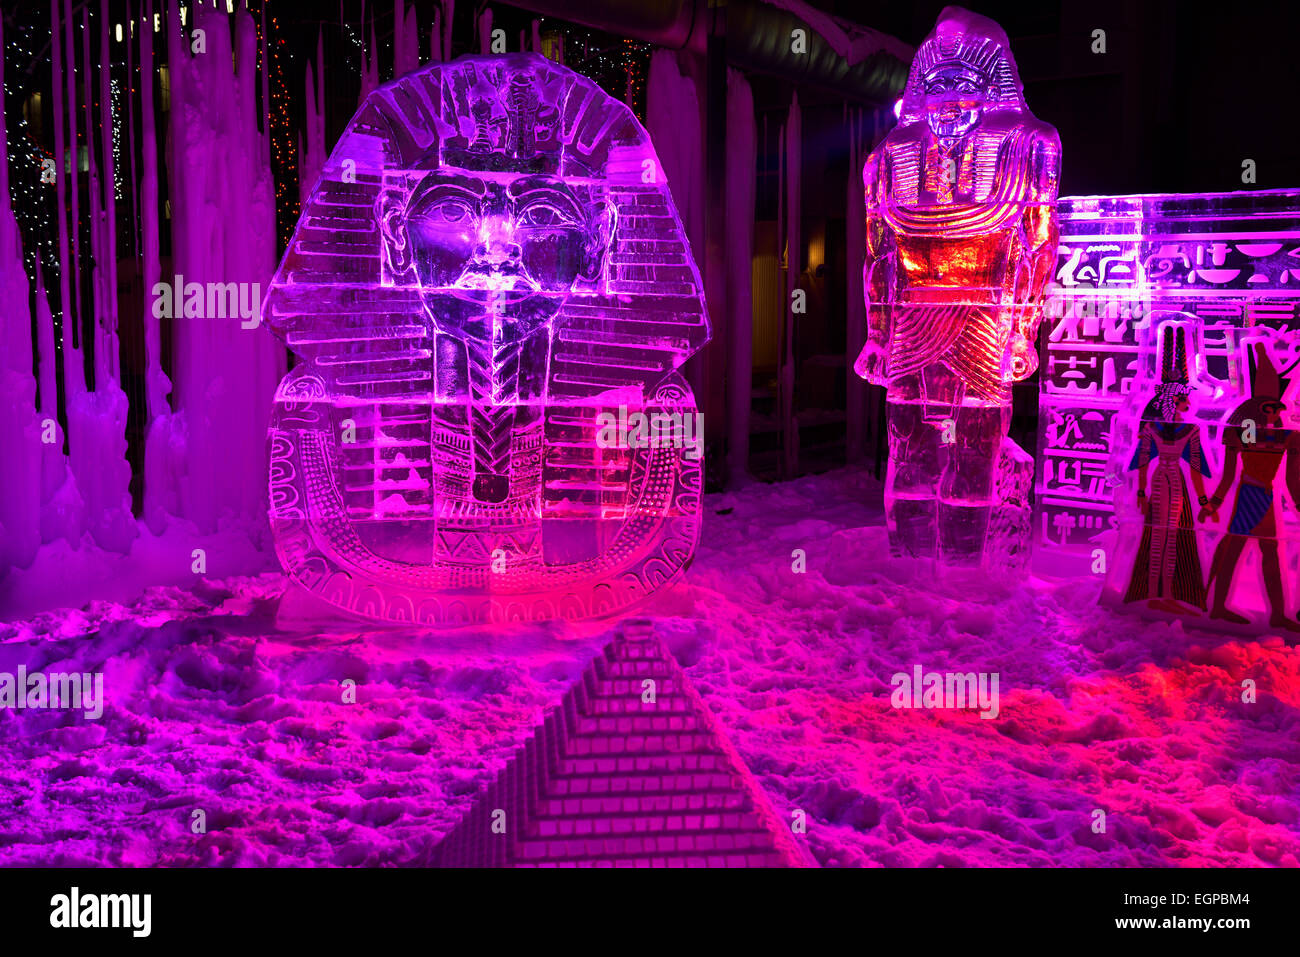 King Tut ice sculpture and burial mask with purple lights at Yorkville Village Park Icefest Toronto Cumberland street - Stock Image